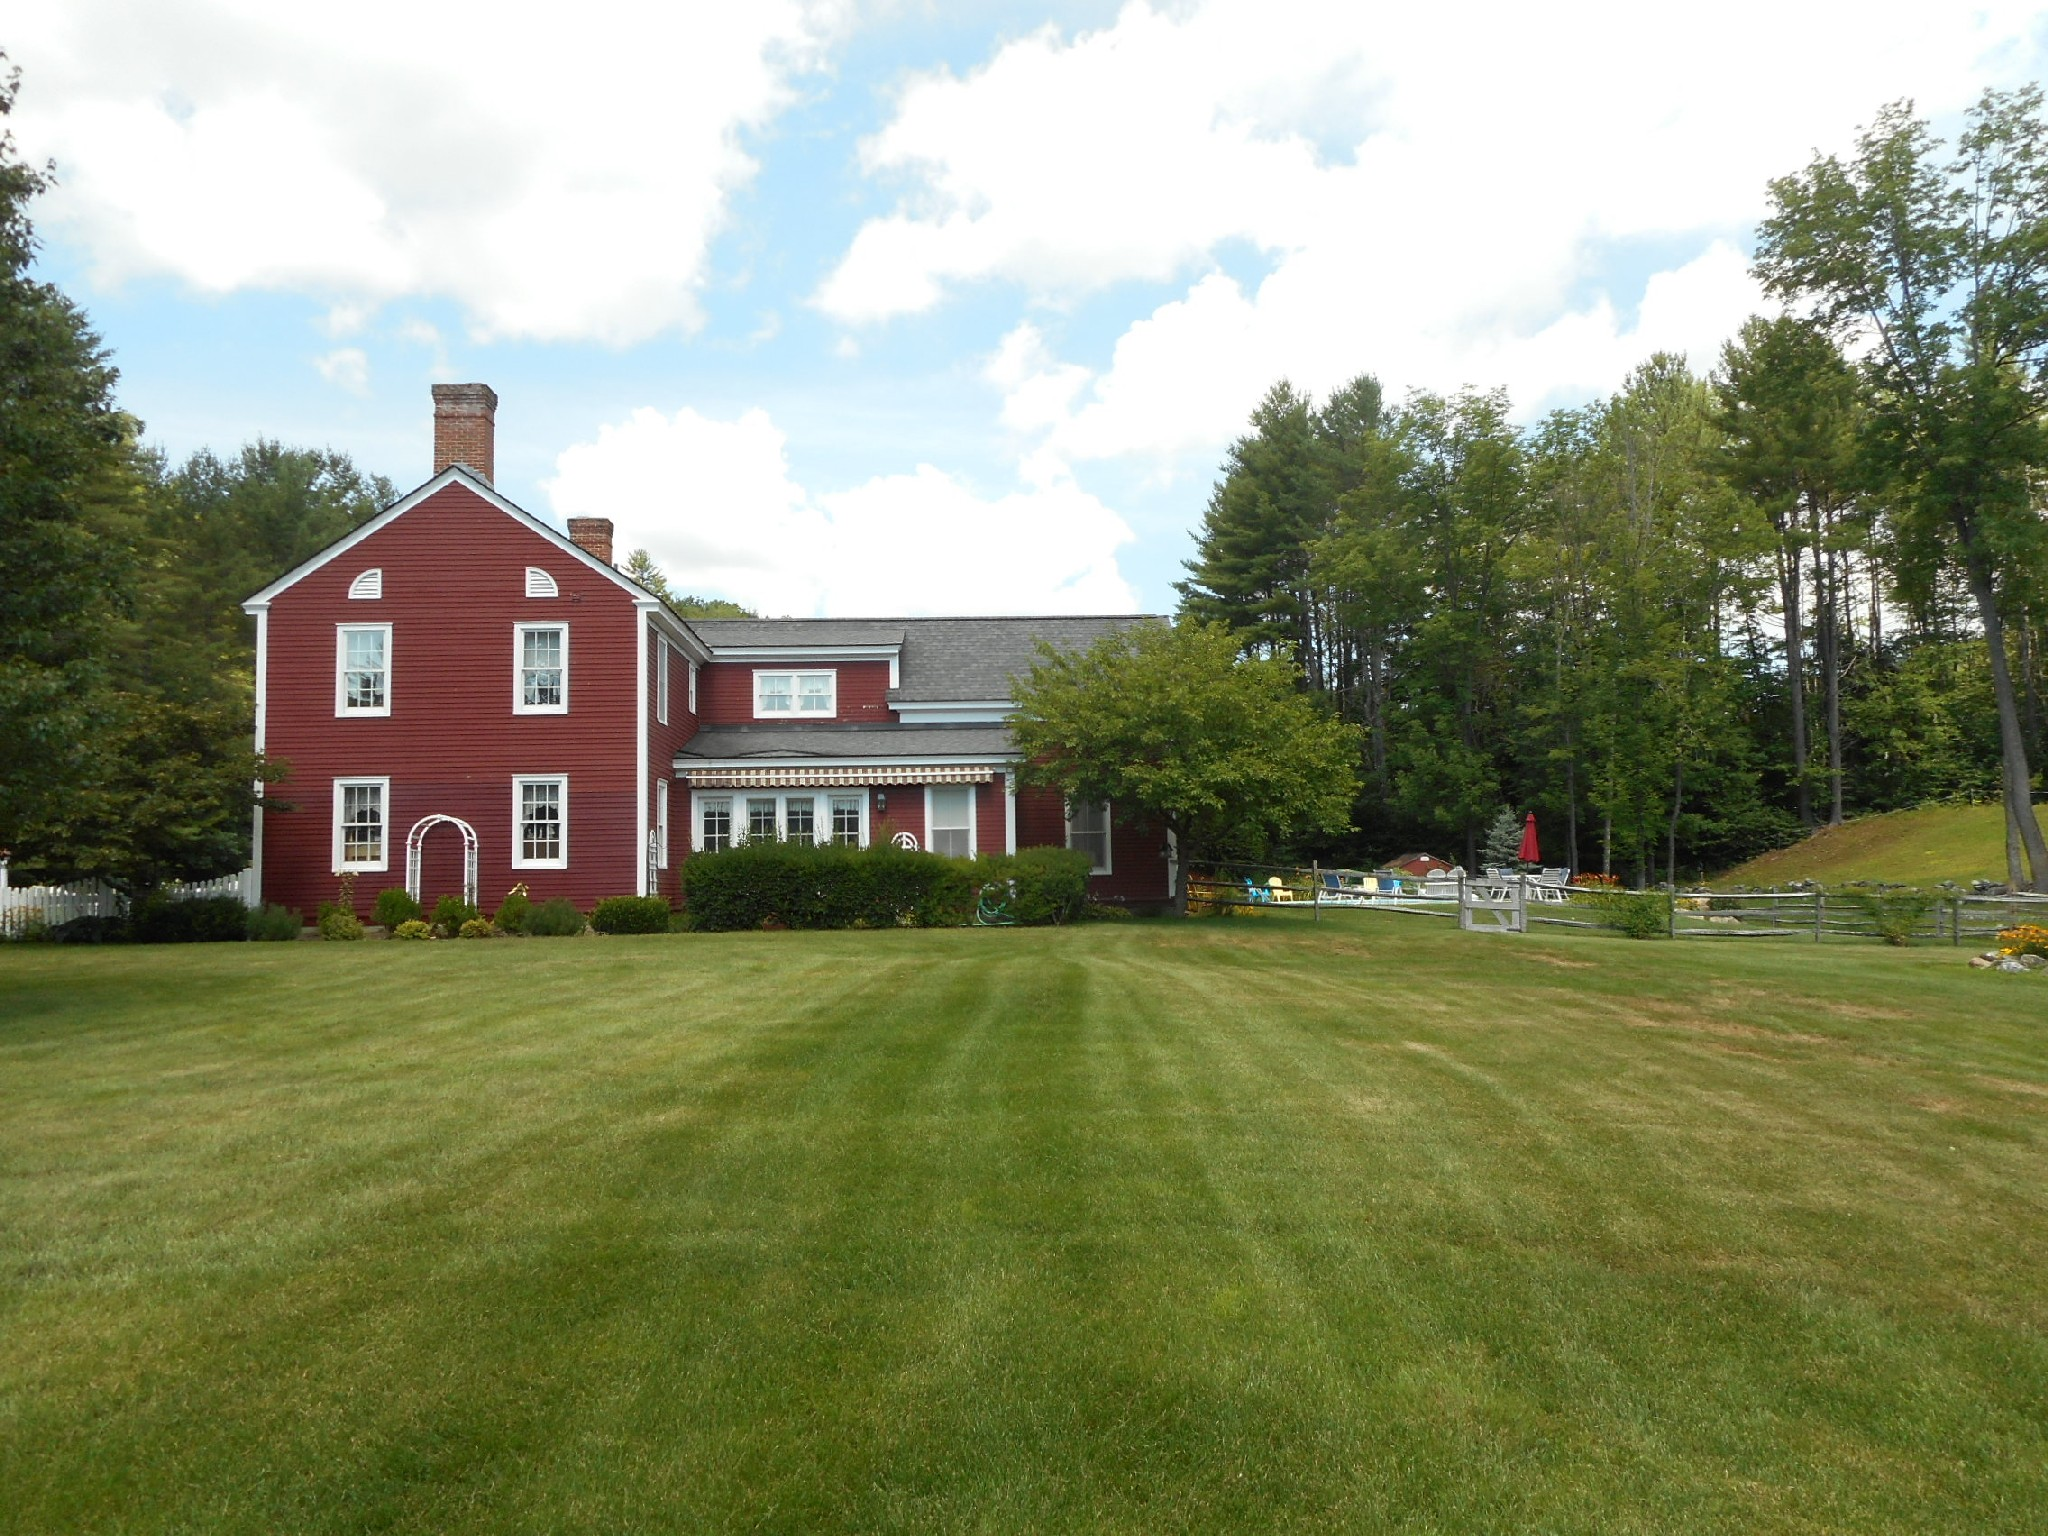 Additional photo for property listing at Gentleman's Farm 364 Houghtonville Rd Grafton, Vermont 05146 United States